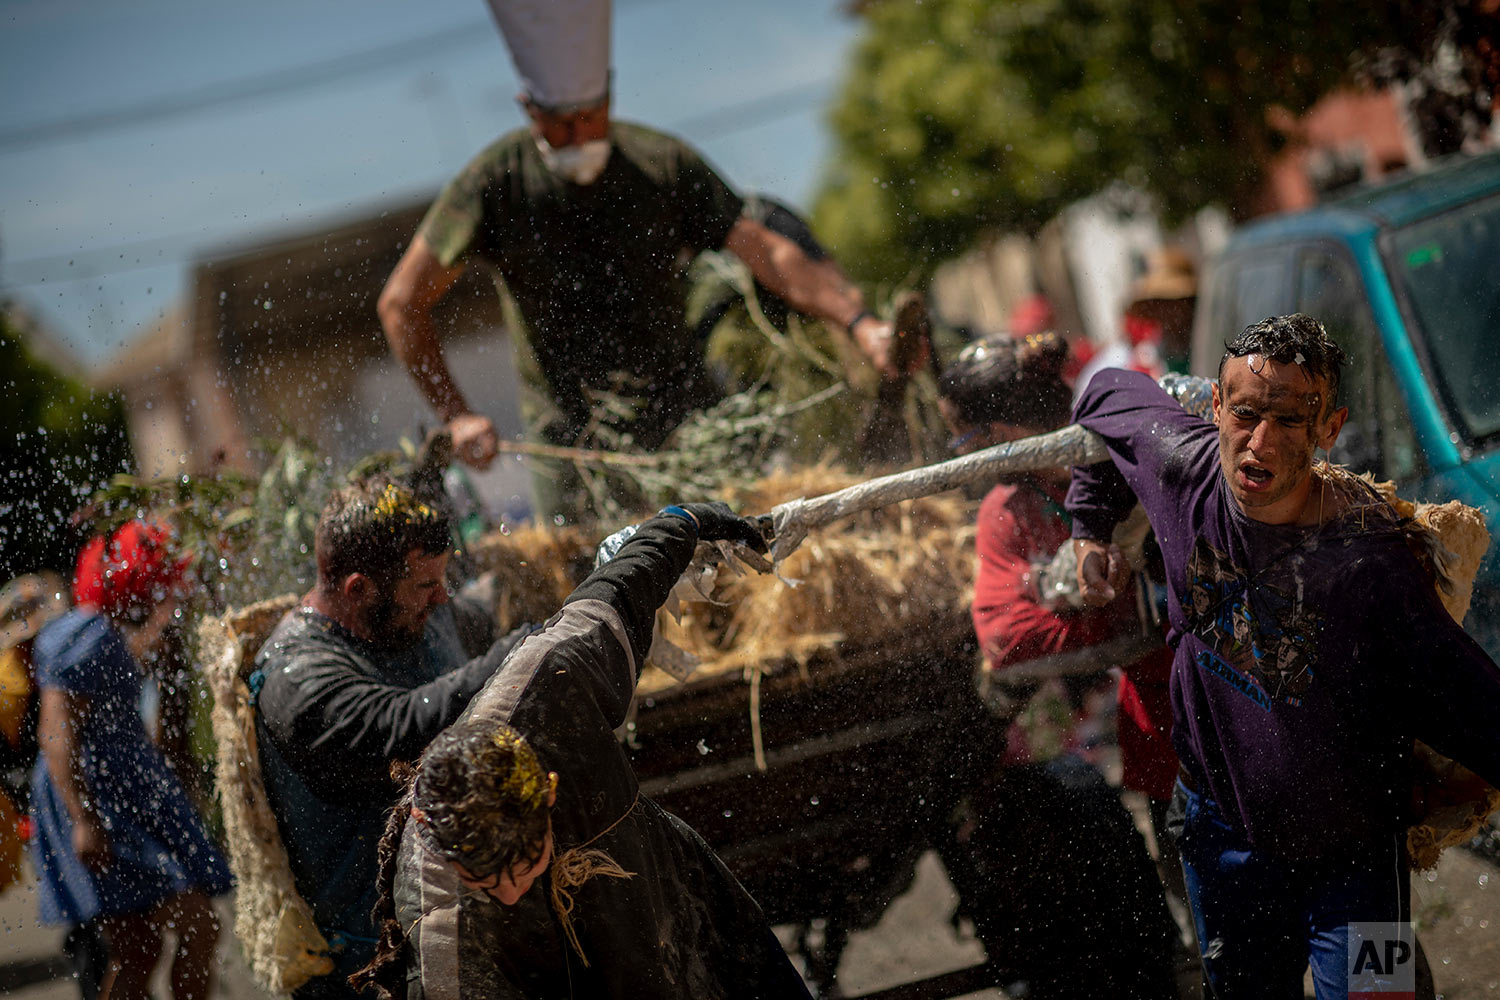 "In this Friday, June 21, 2019 photo, novice members of the ""Hermandad del santísimo sacramento pecados y danzantes"" brotherhood pull a cart during a procession as part of Corpus Christi celebrations in Camunas, central Spain.  (AP Photo/Bernat Armangue)"